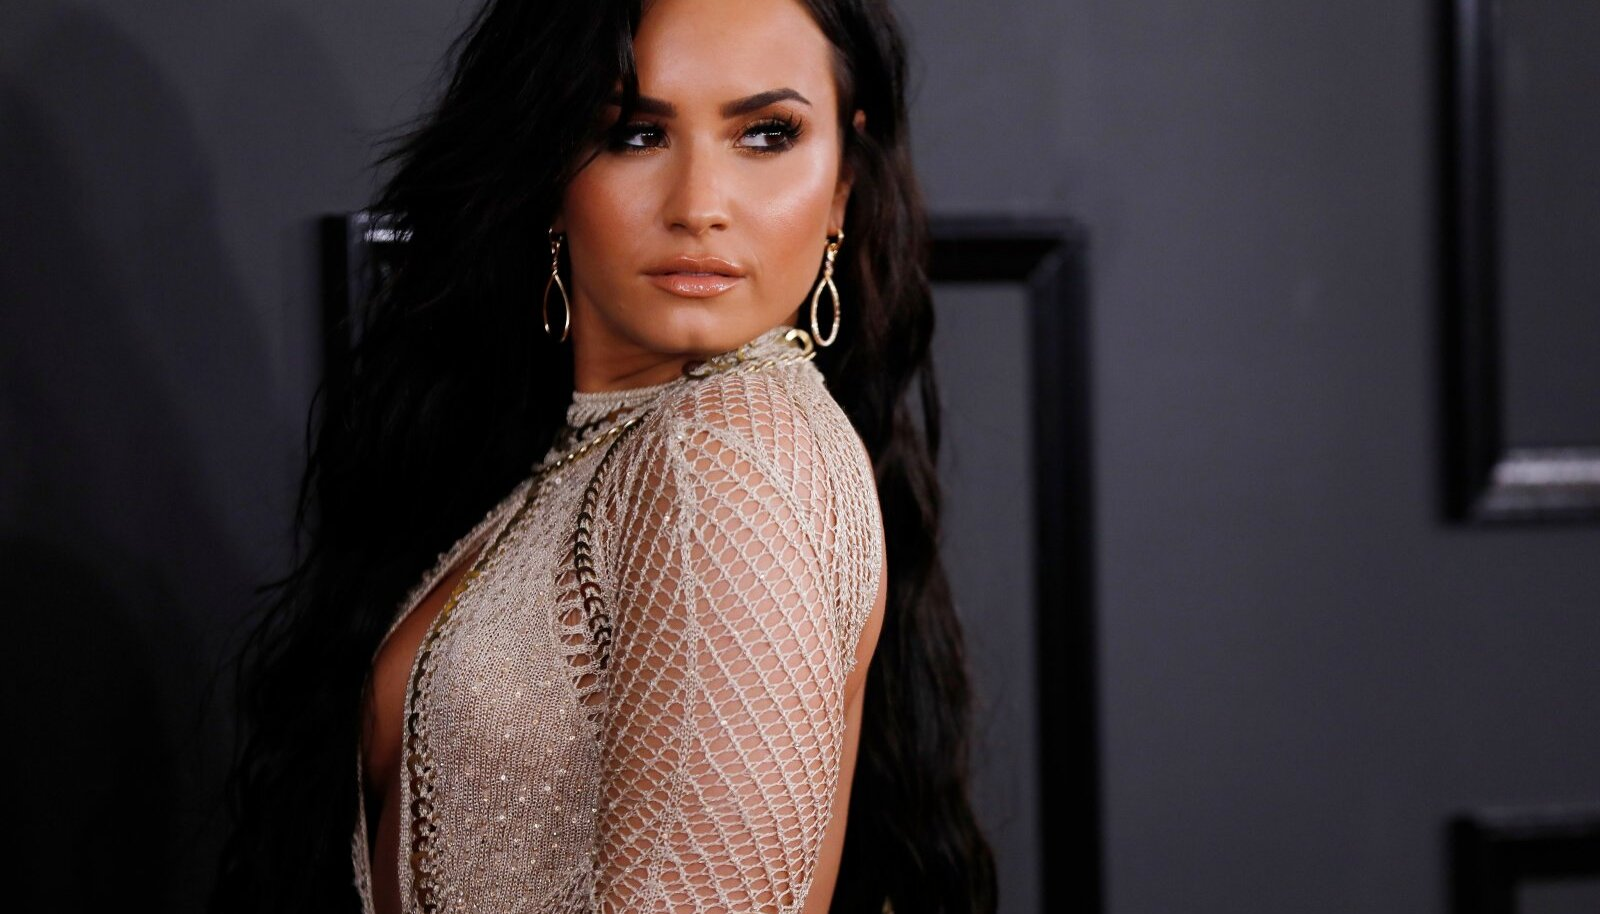 Singer Demi Lovato arrives at the 59th Annual Grammy Awards in Los Angeles